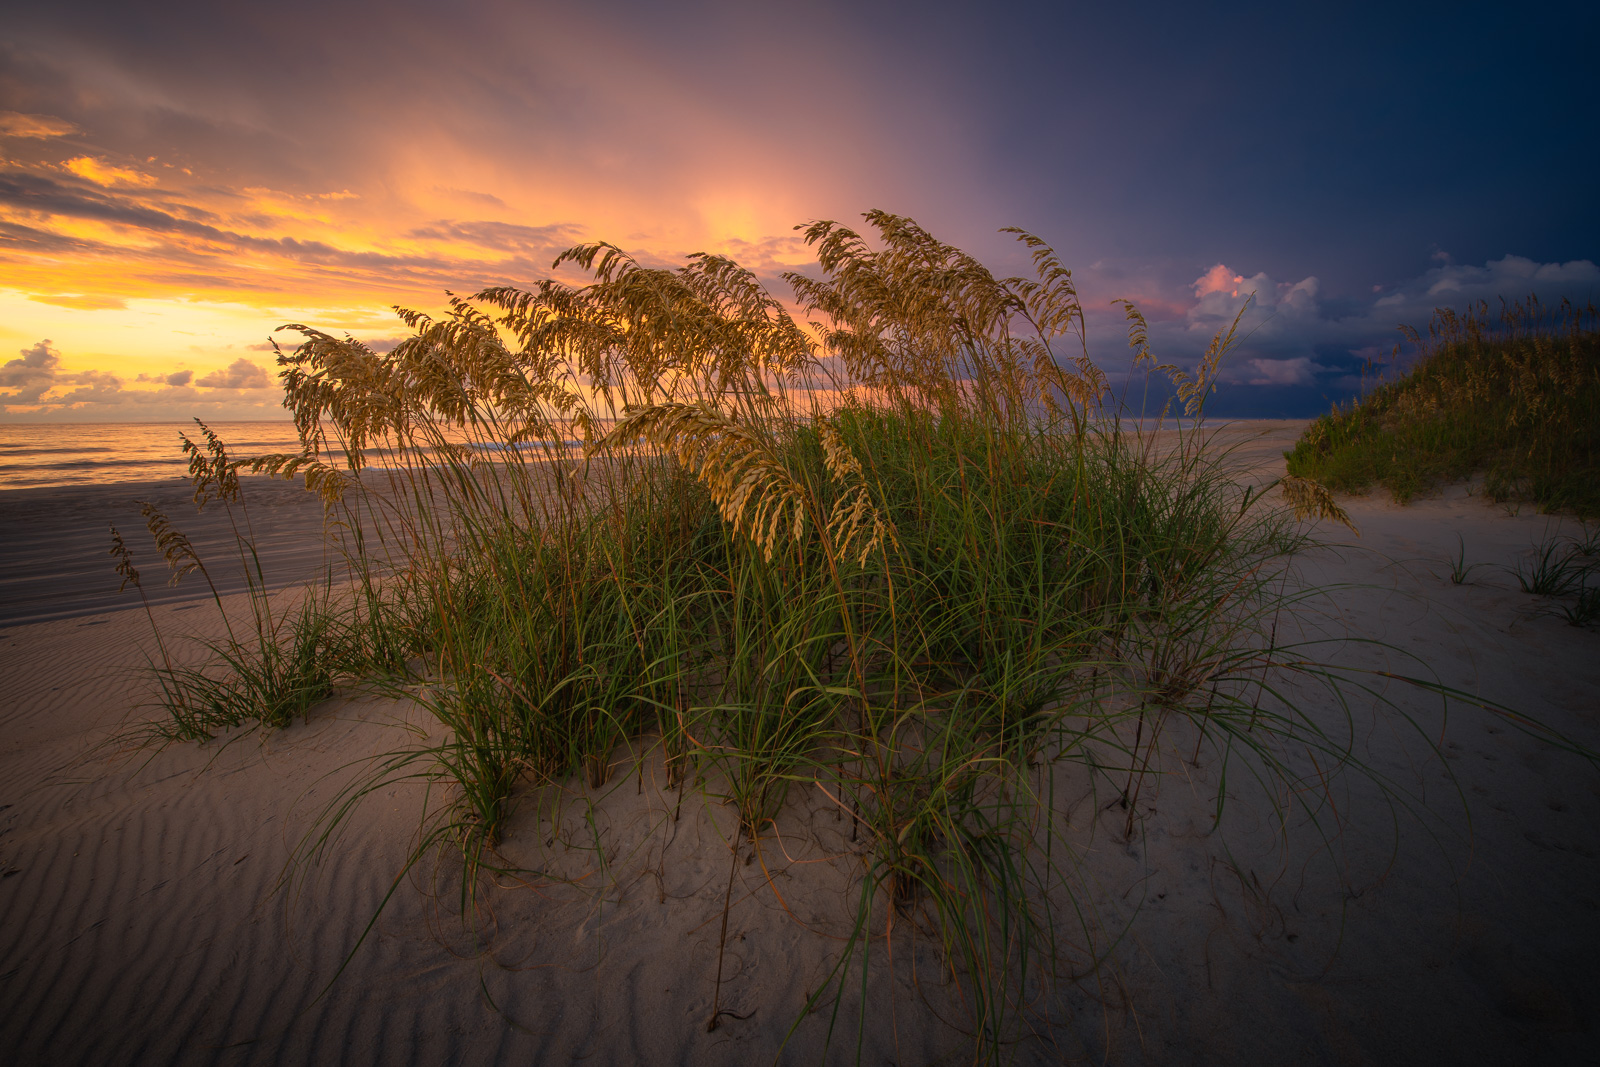 Sunrise over the Atlantic Ocean with dunes and grass along the Outer Banks.